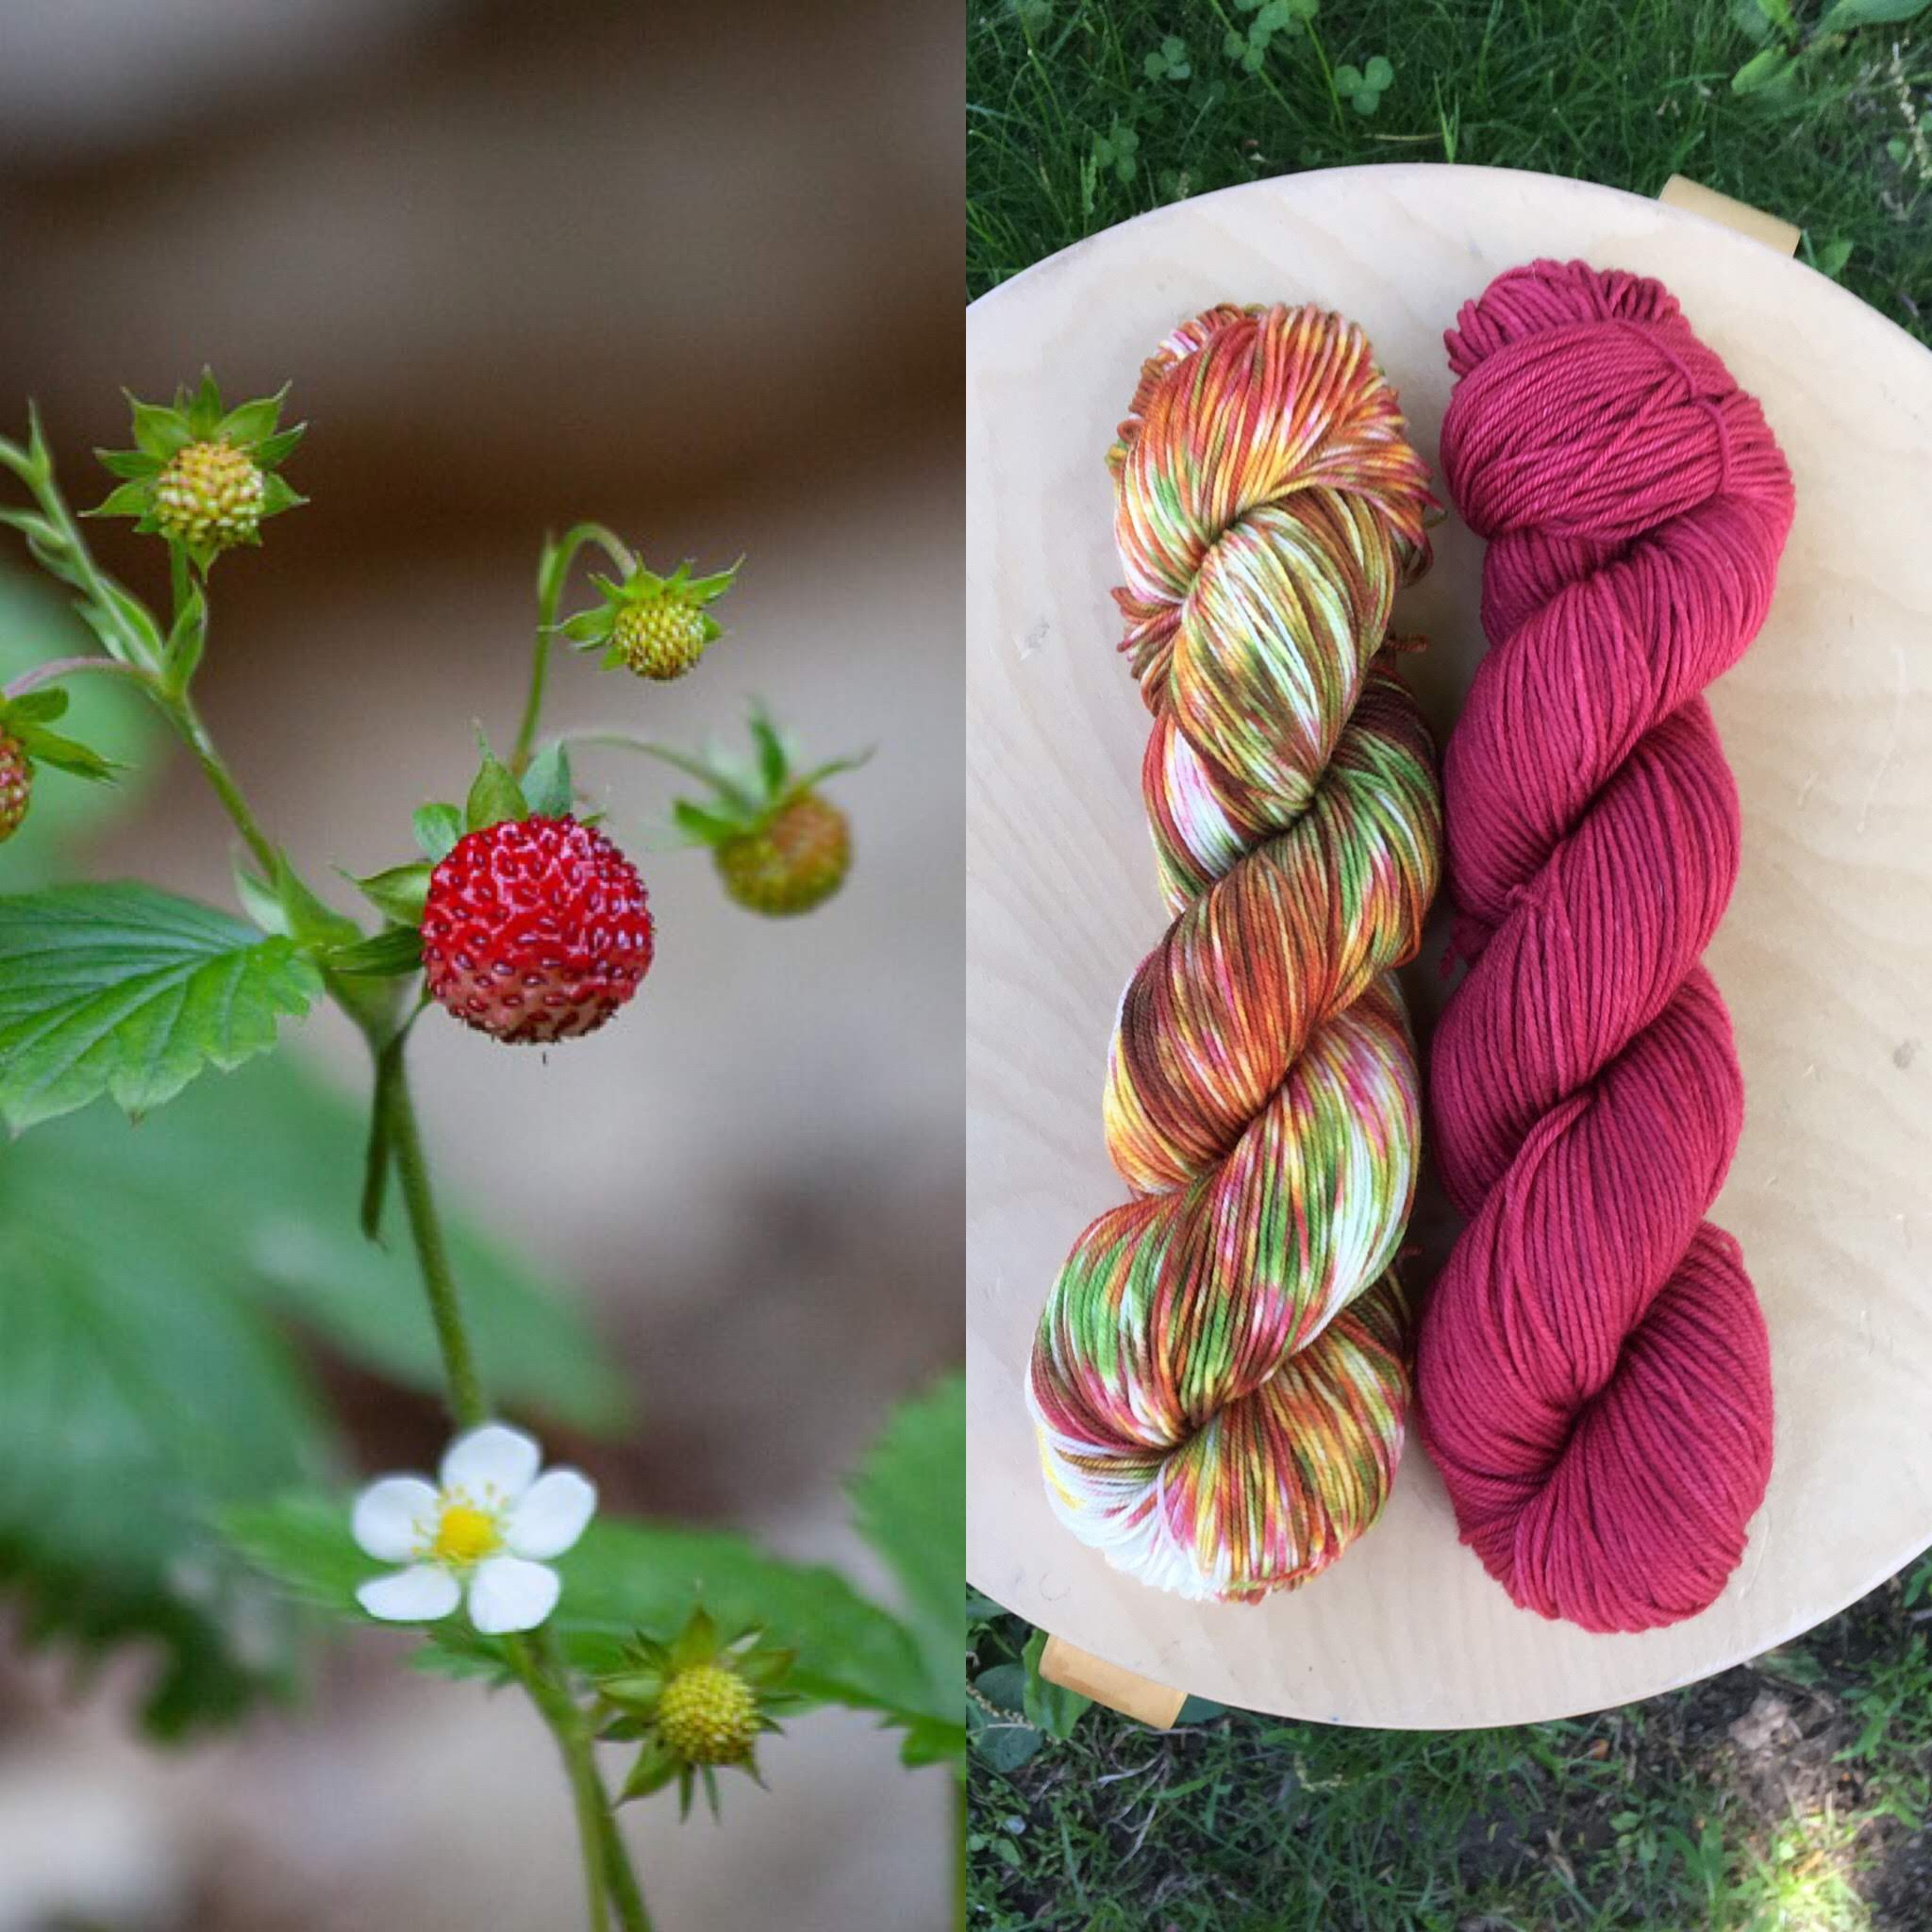 June Botany Club. Colorway: Wild Strawberry. Semisolid: Strawberry Red.